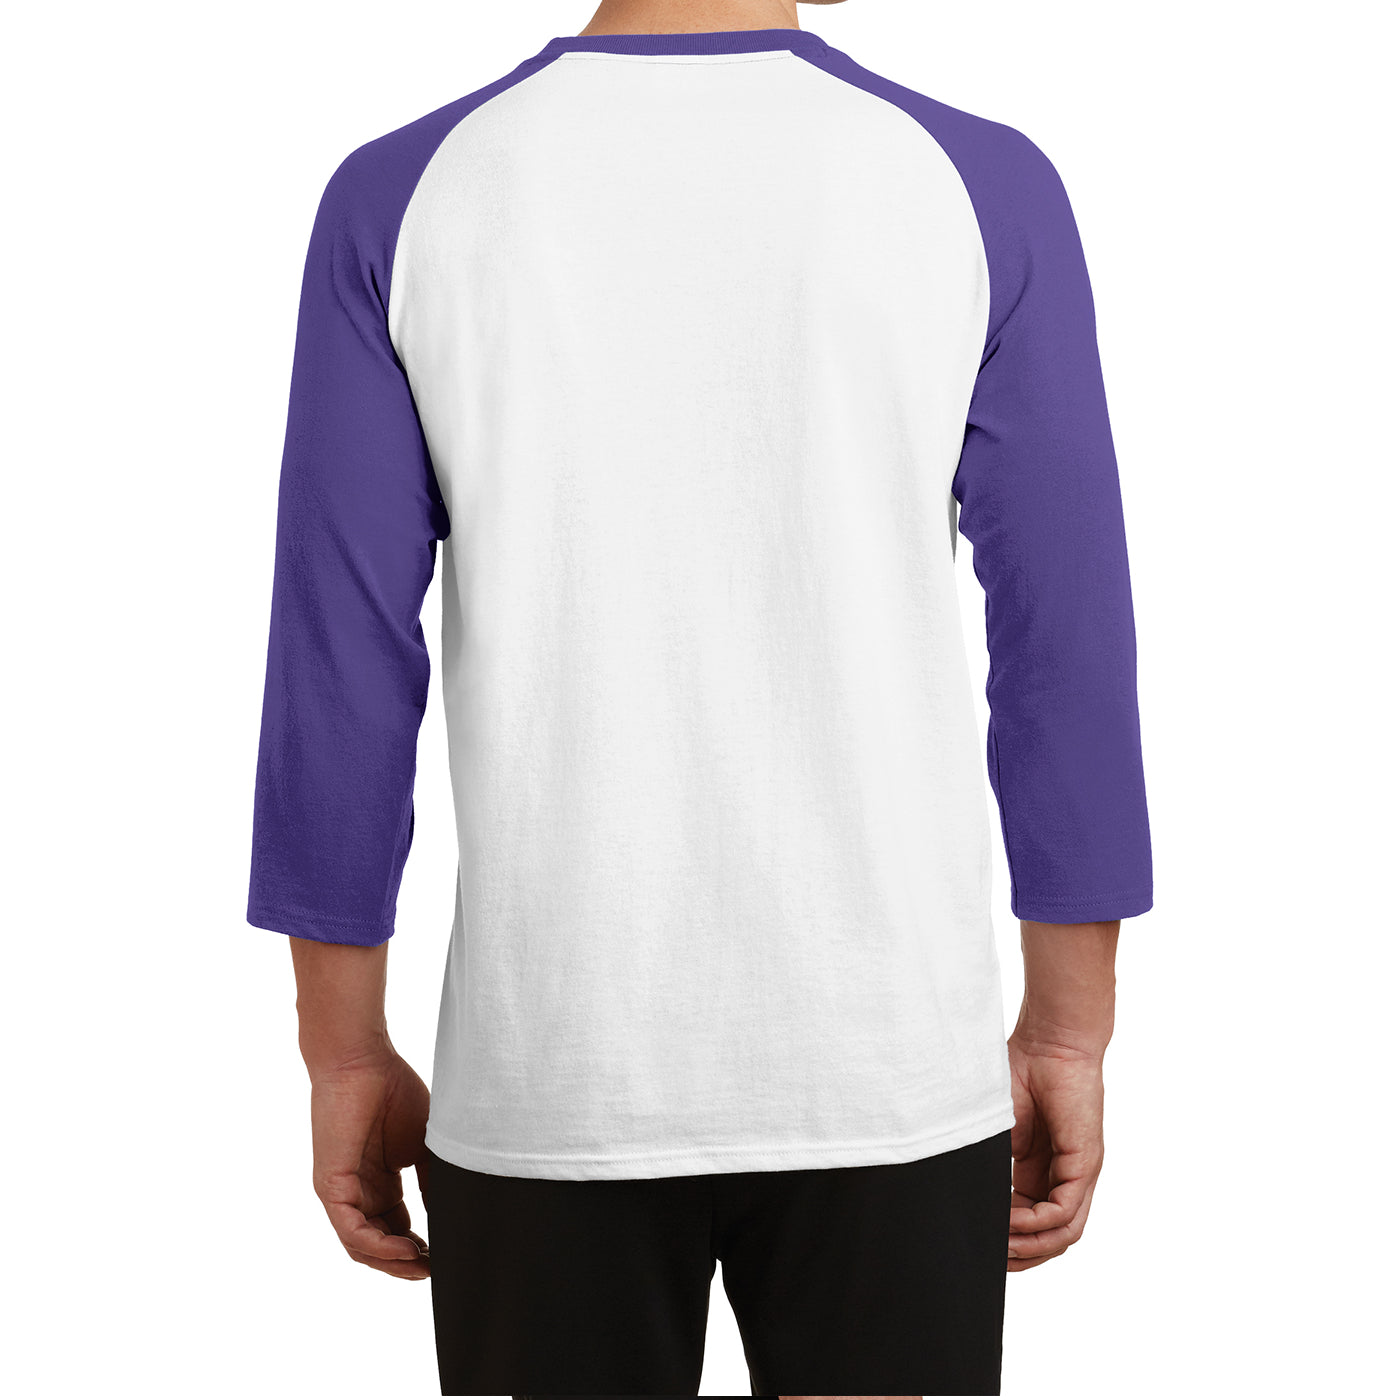 Men's Core Blend 3/4-Sleeve Raglan Tee - White/ Purple - Back